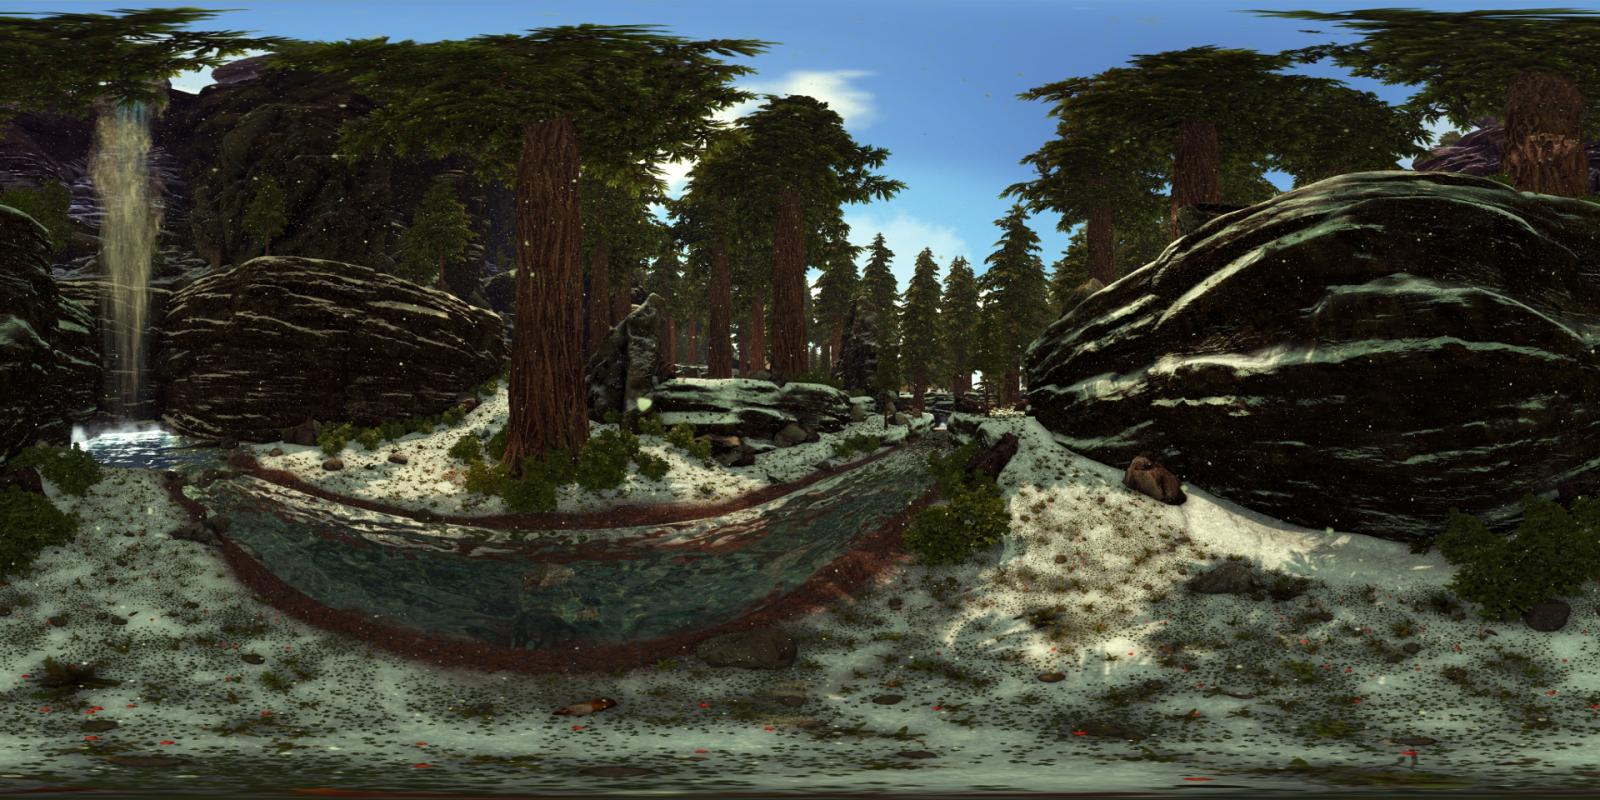 large.5882e6f807beb_FataL1ty-MidforestSnows-Panoramic360Stereoscopic3Dsta.jpg